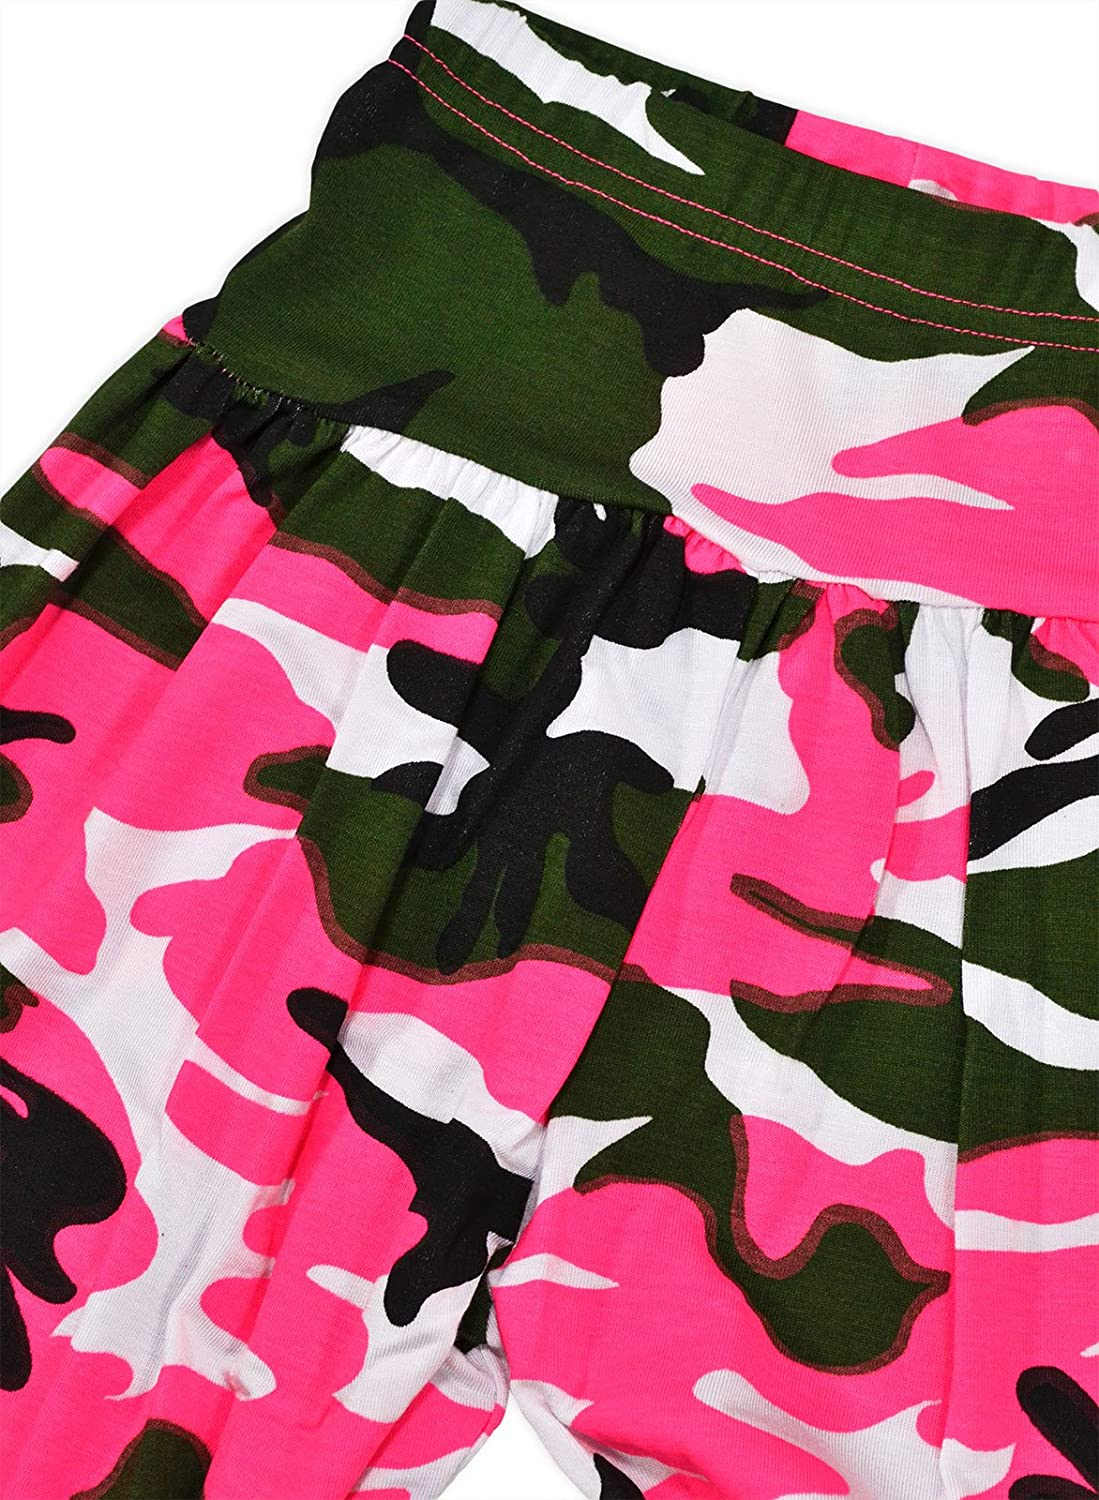 Machine Washable Casual jolly rascals Girls Dance Pants in Neon Green Viscose Camouflage